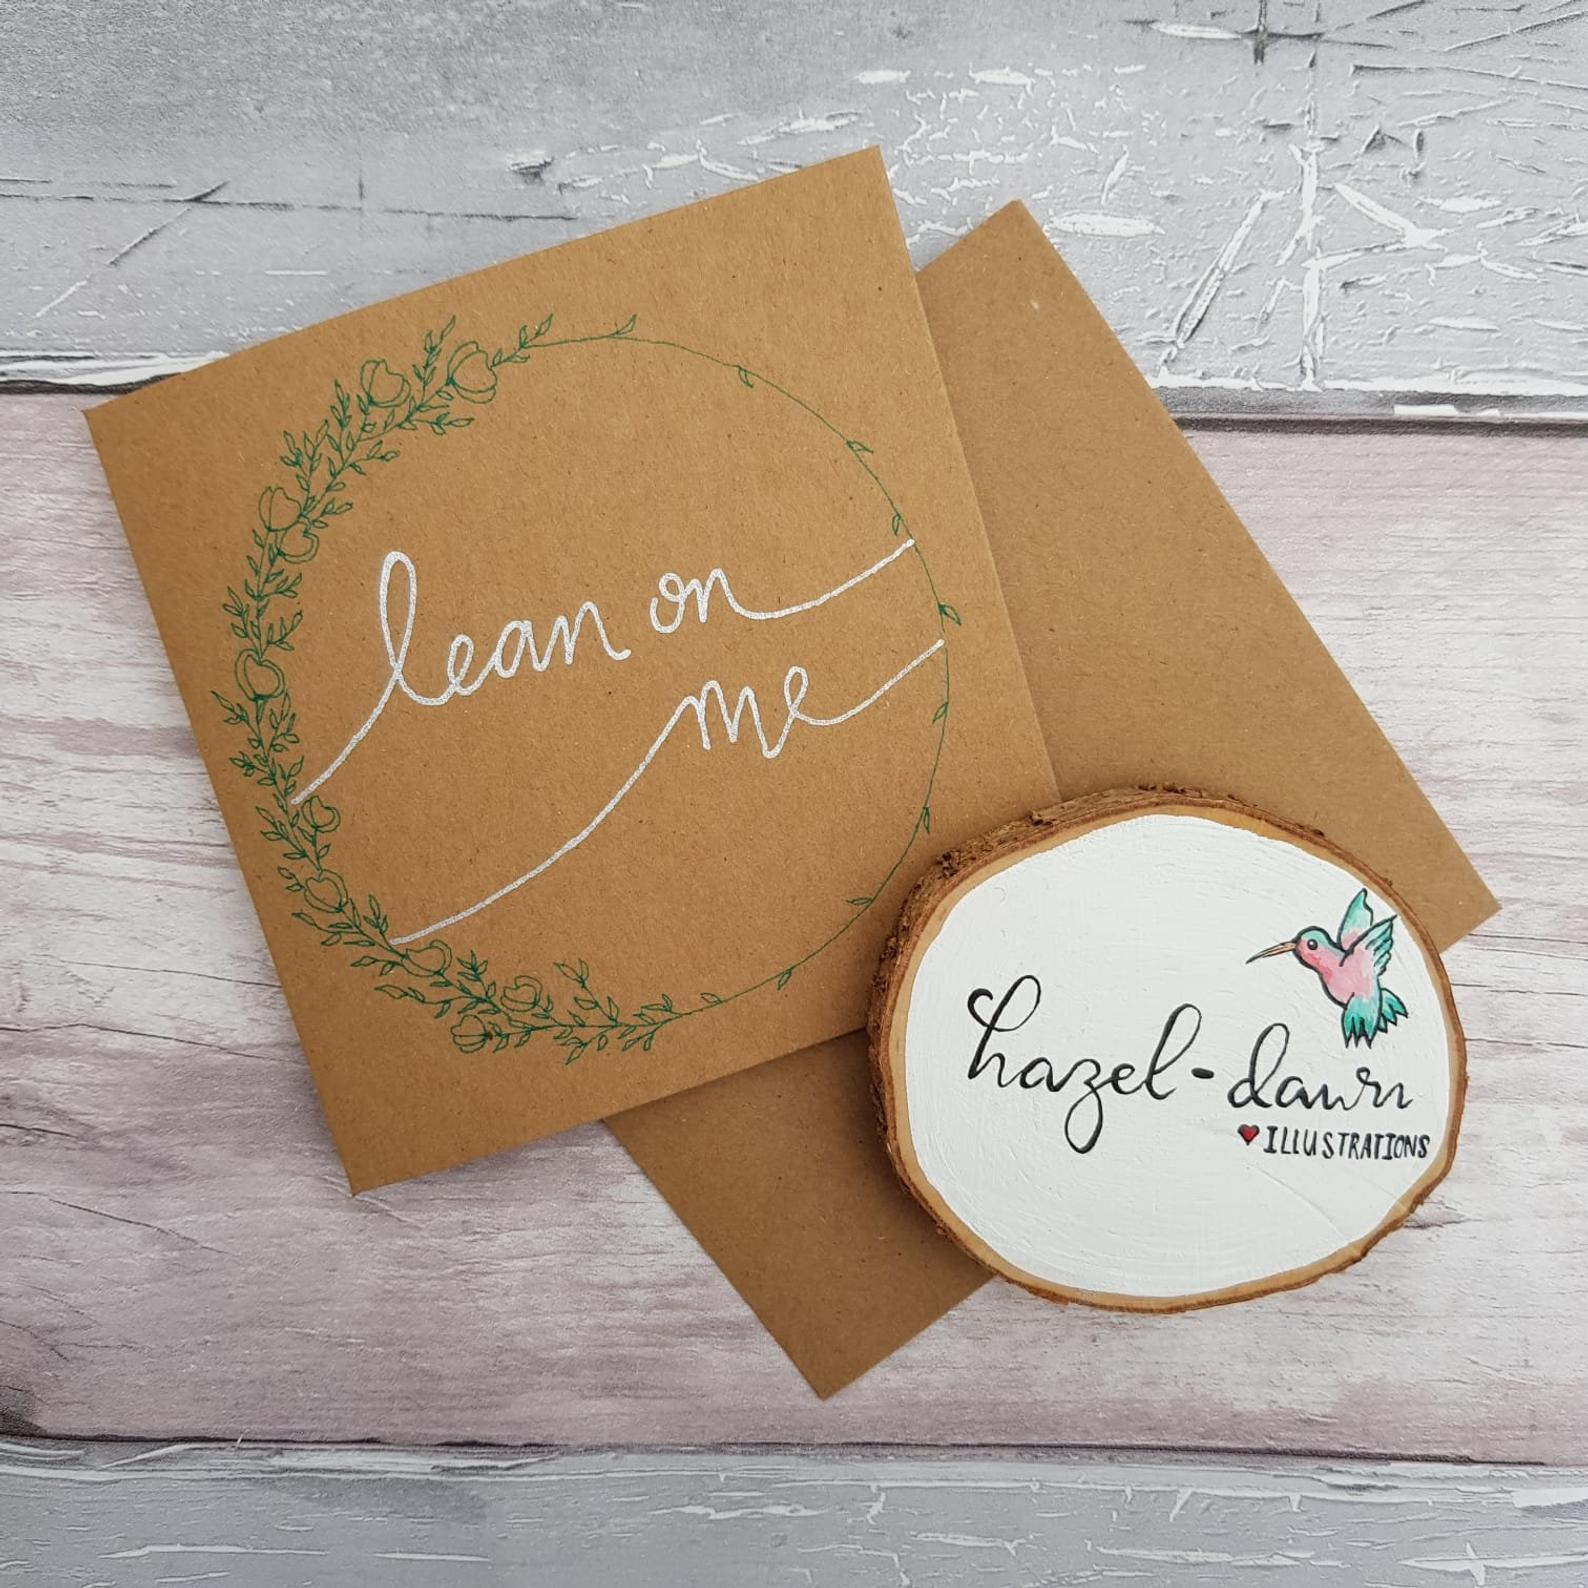 Lean on me friendship card support